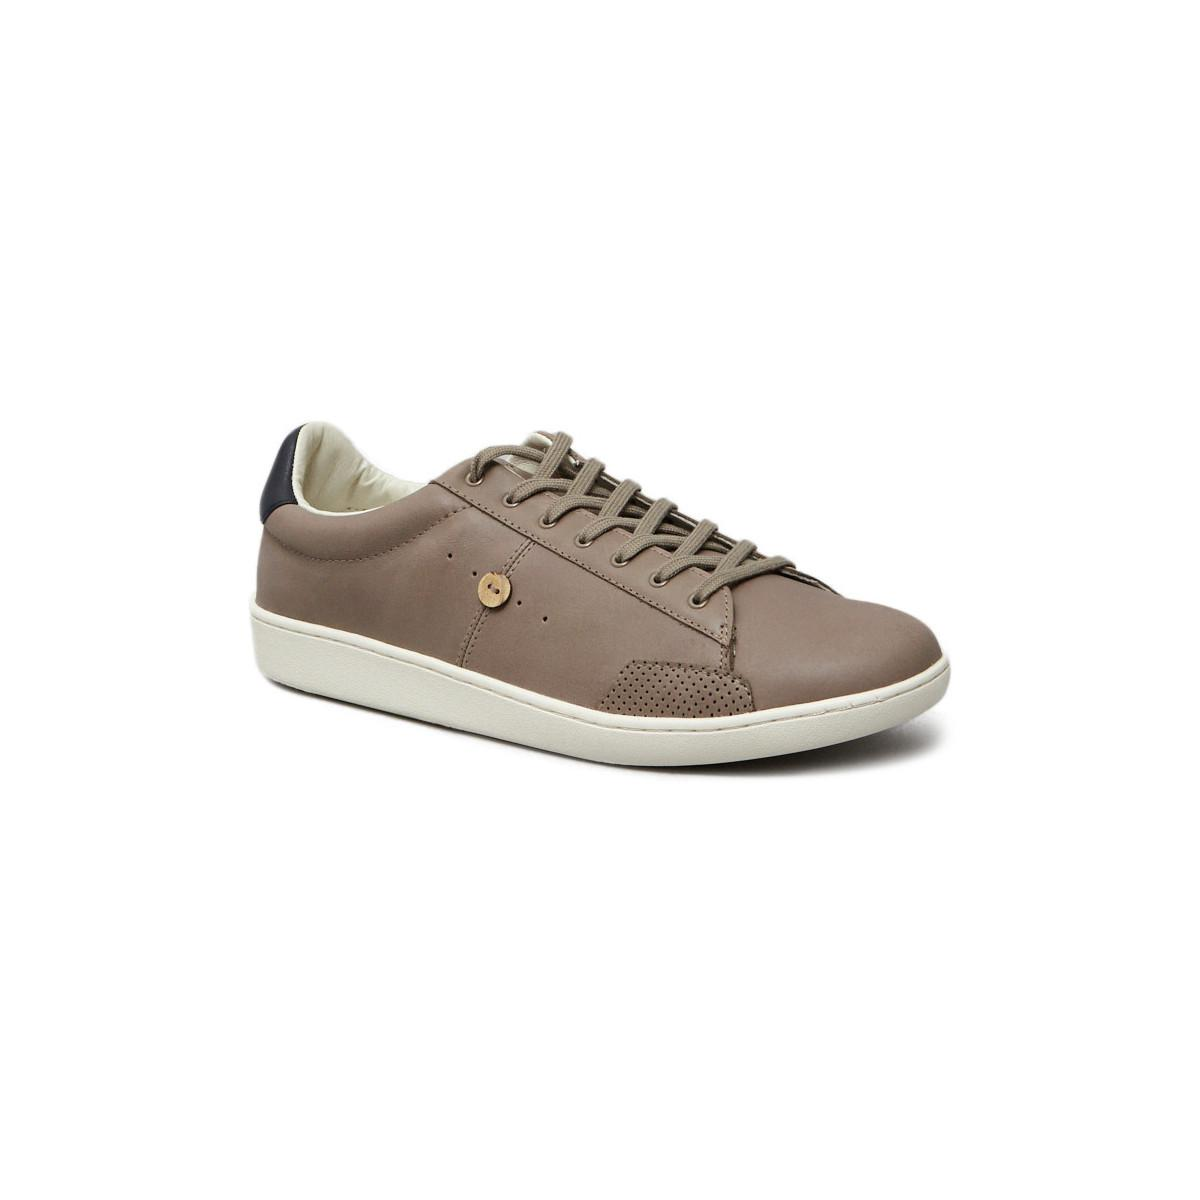 Faguo. Natural Hosta Trainers 42444 Taupe Men's Trainers In Beige